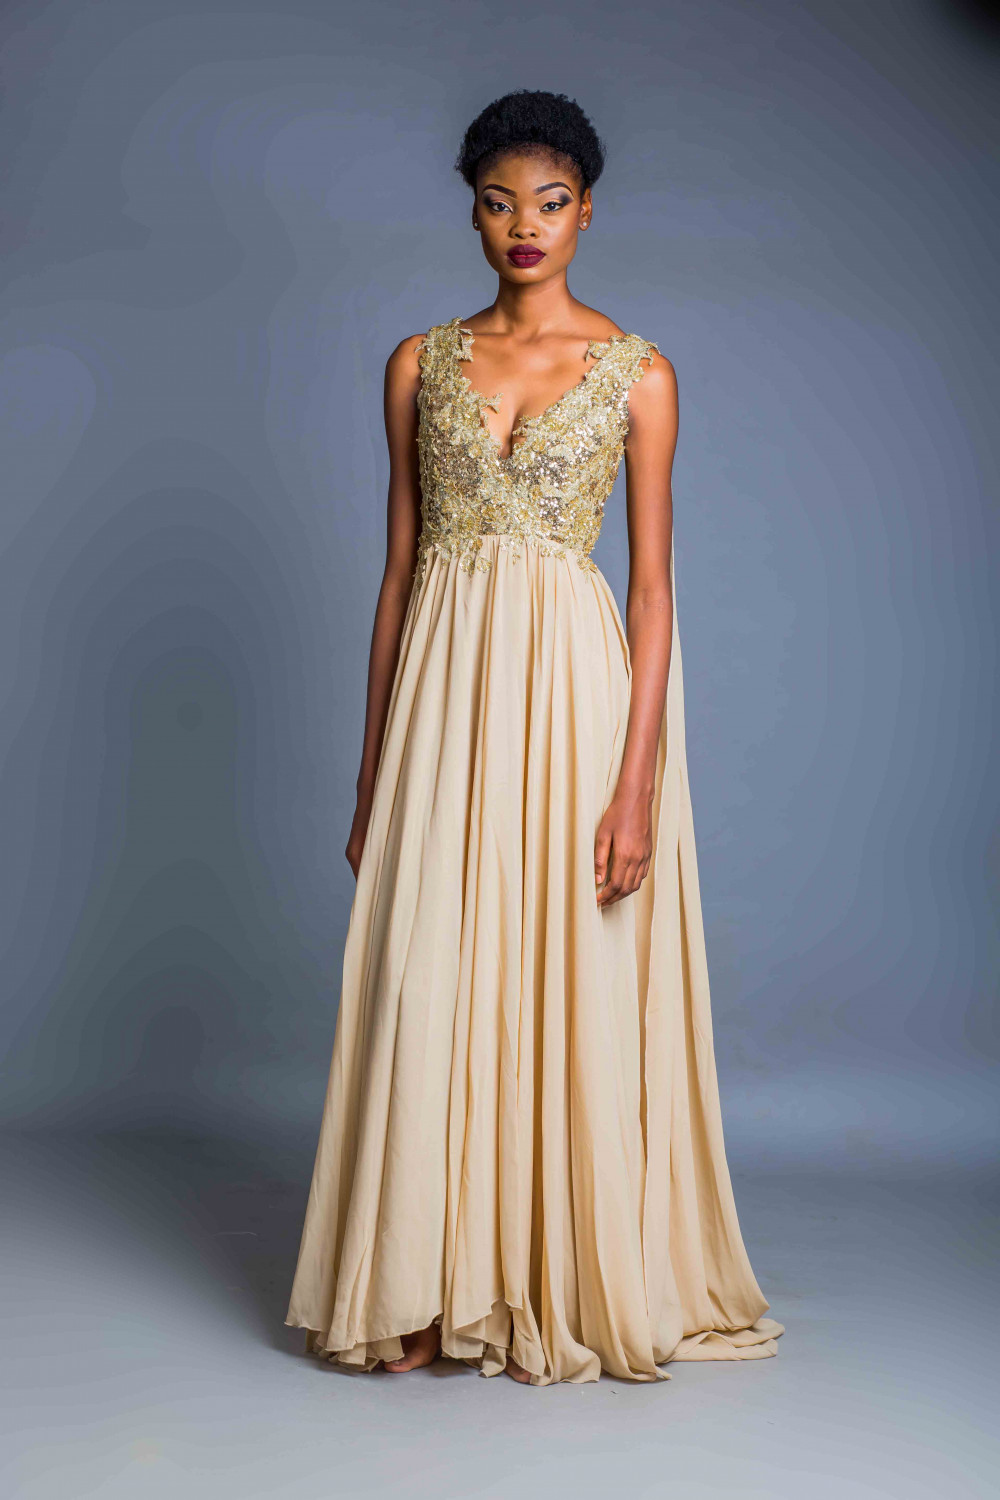 Hollerose Designs 2016 Collection Bridal 11